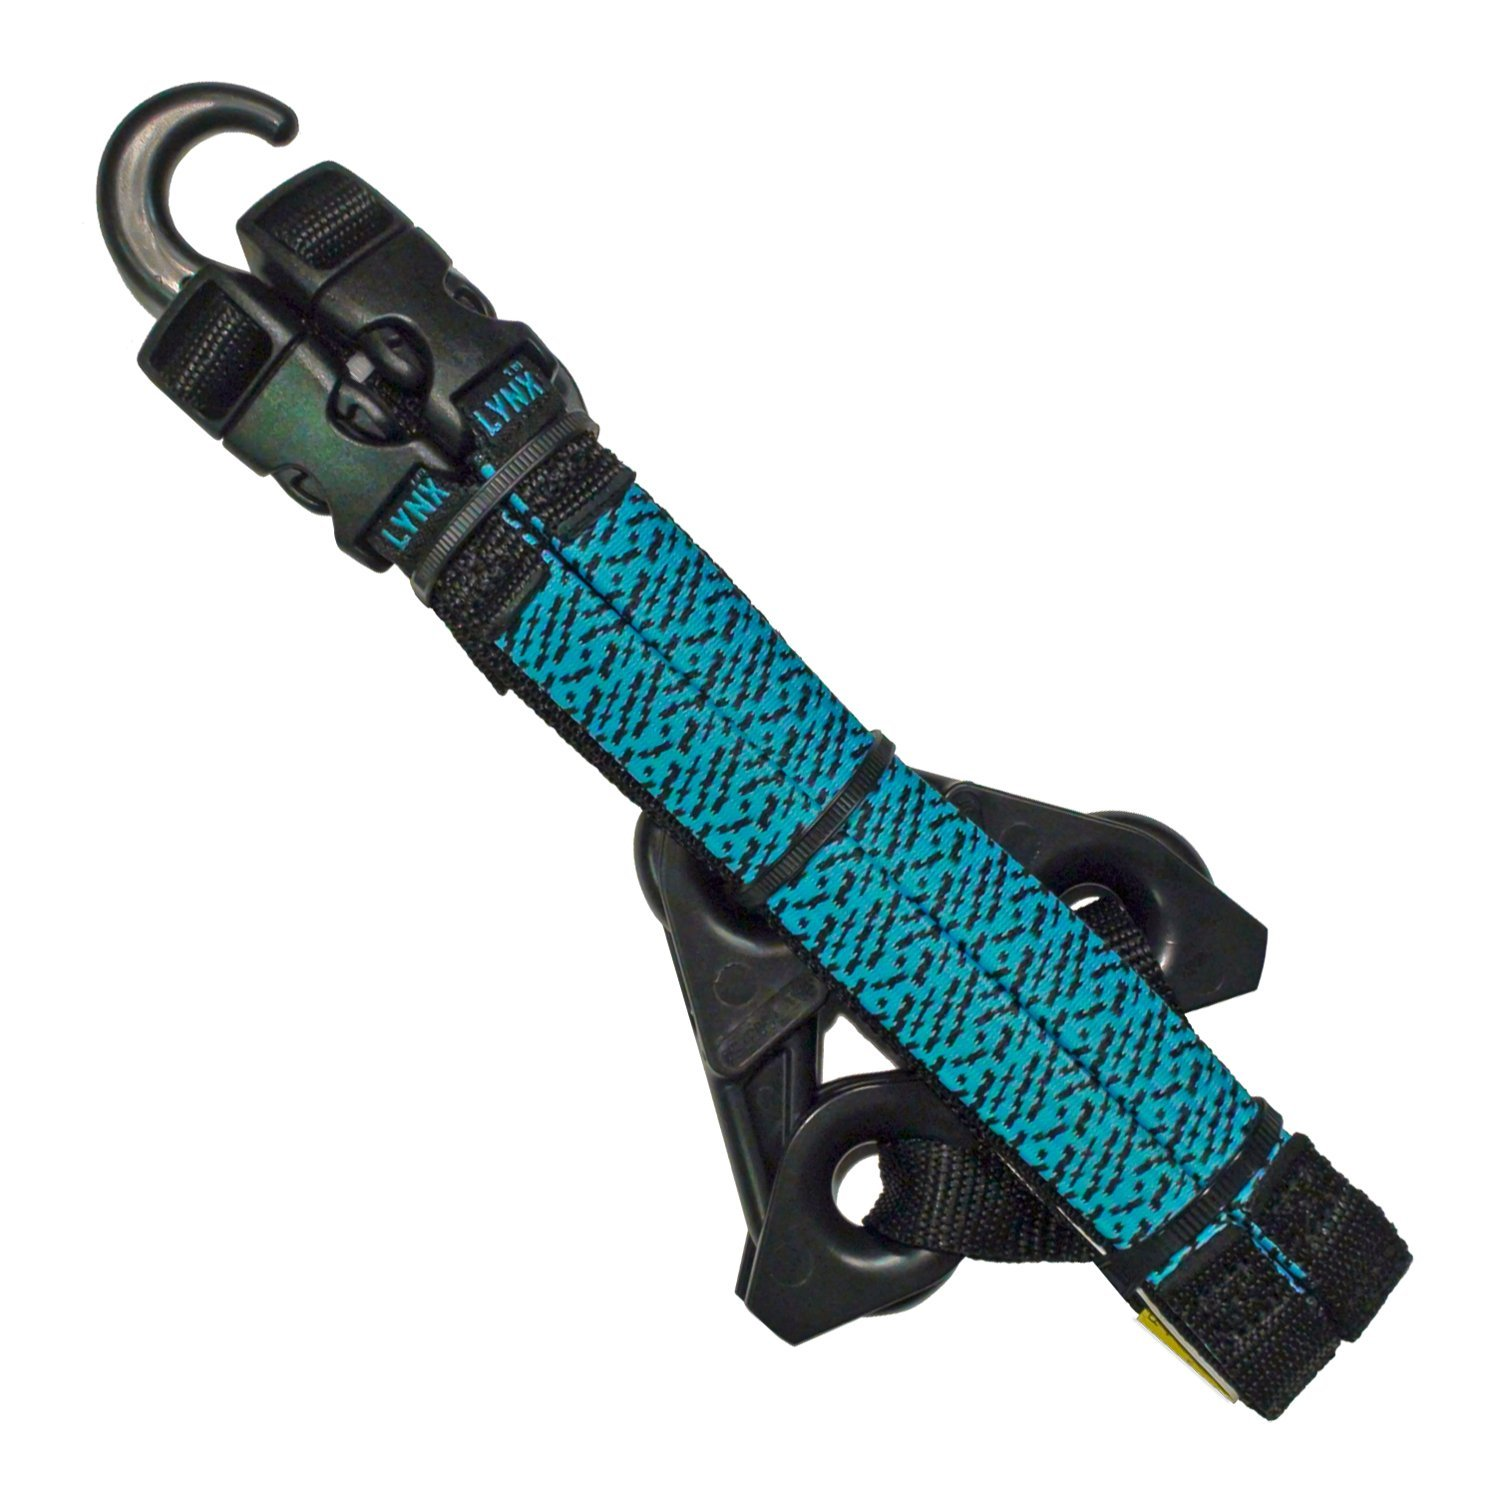 LYNX Hooks® Aqua Blue Adjustable, Interlocking Gear Straps